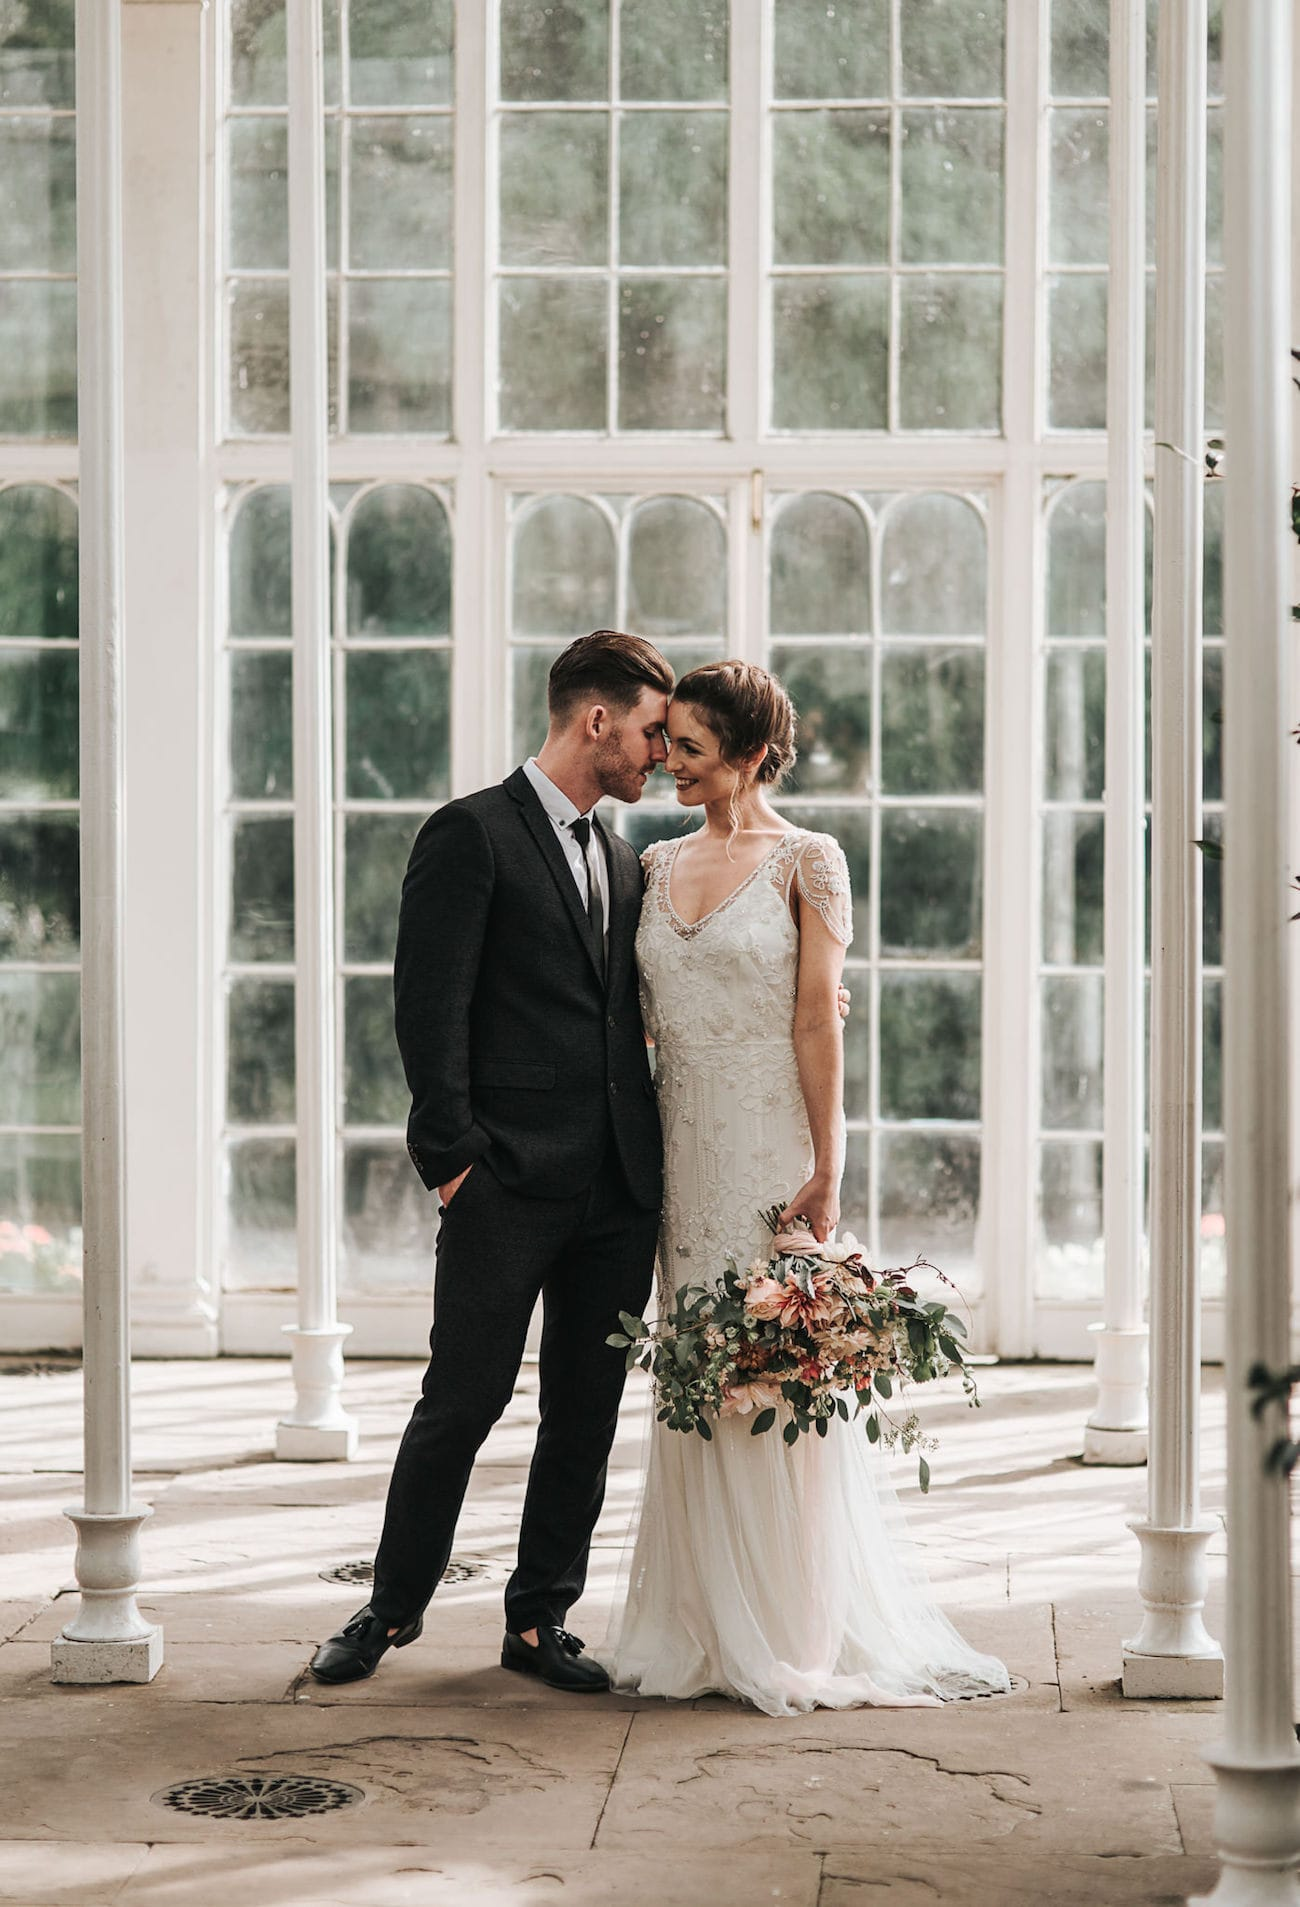 Greenhouse Wedding | Image: Pear & Bear Photography